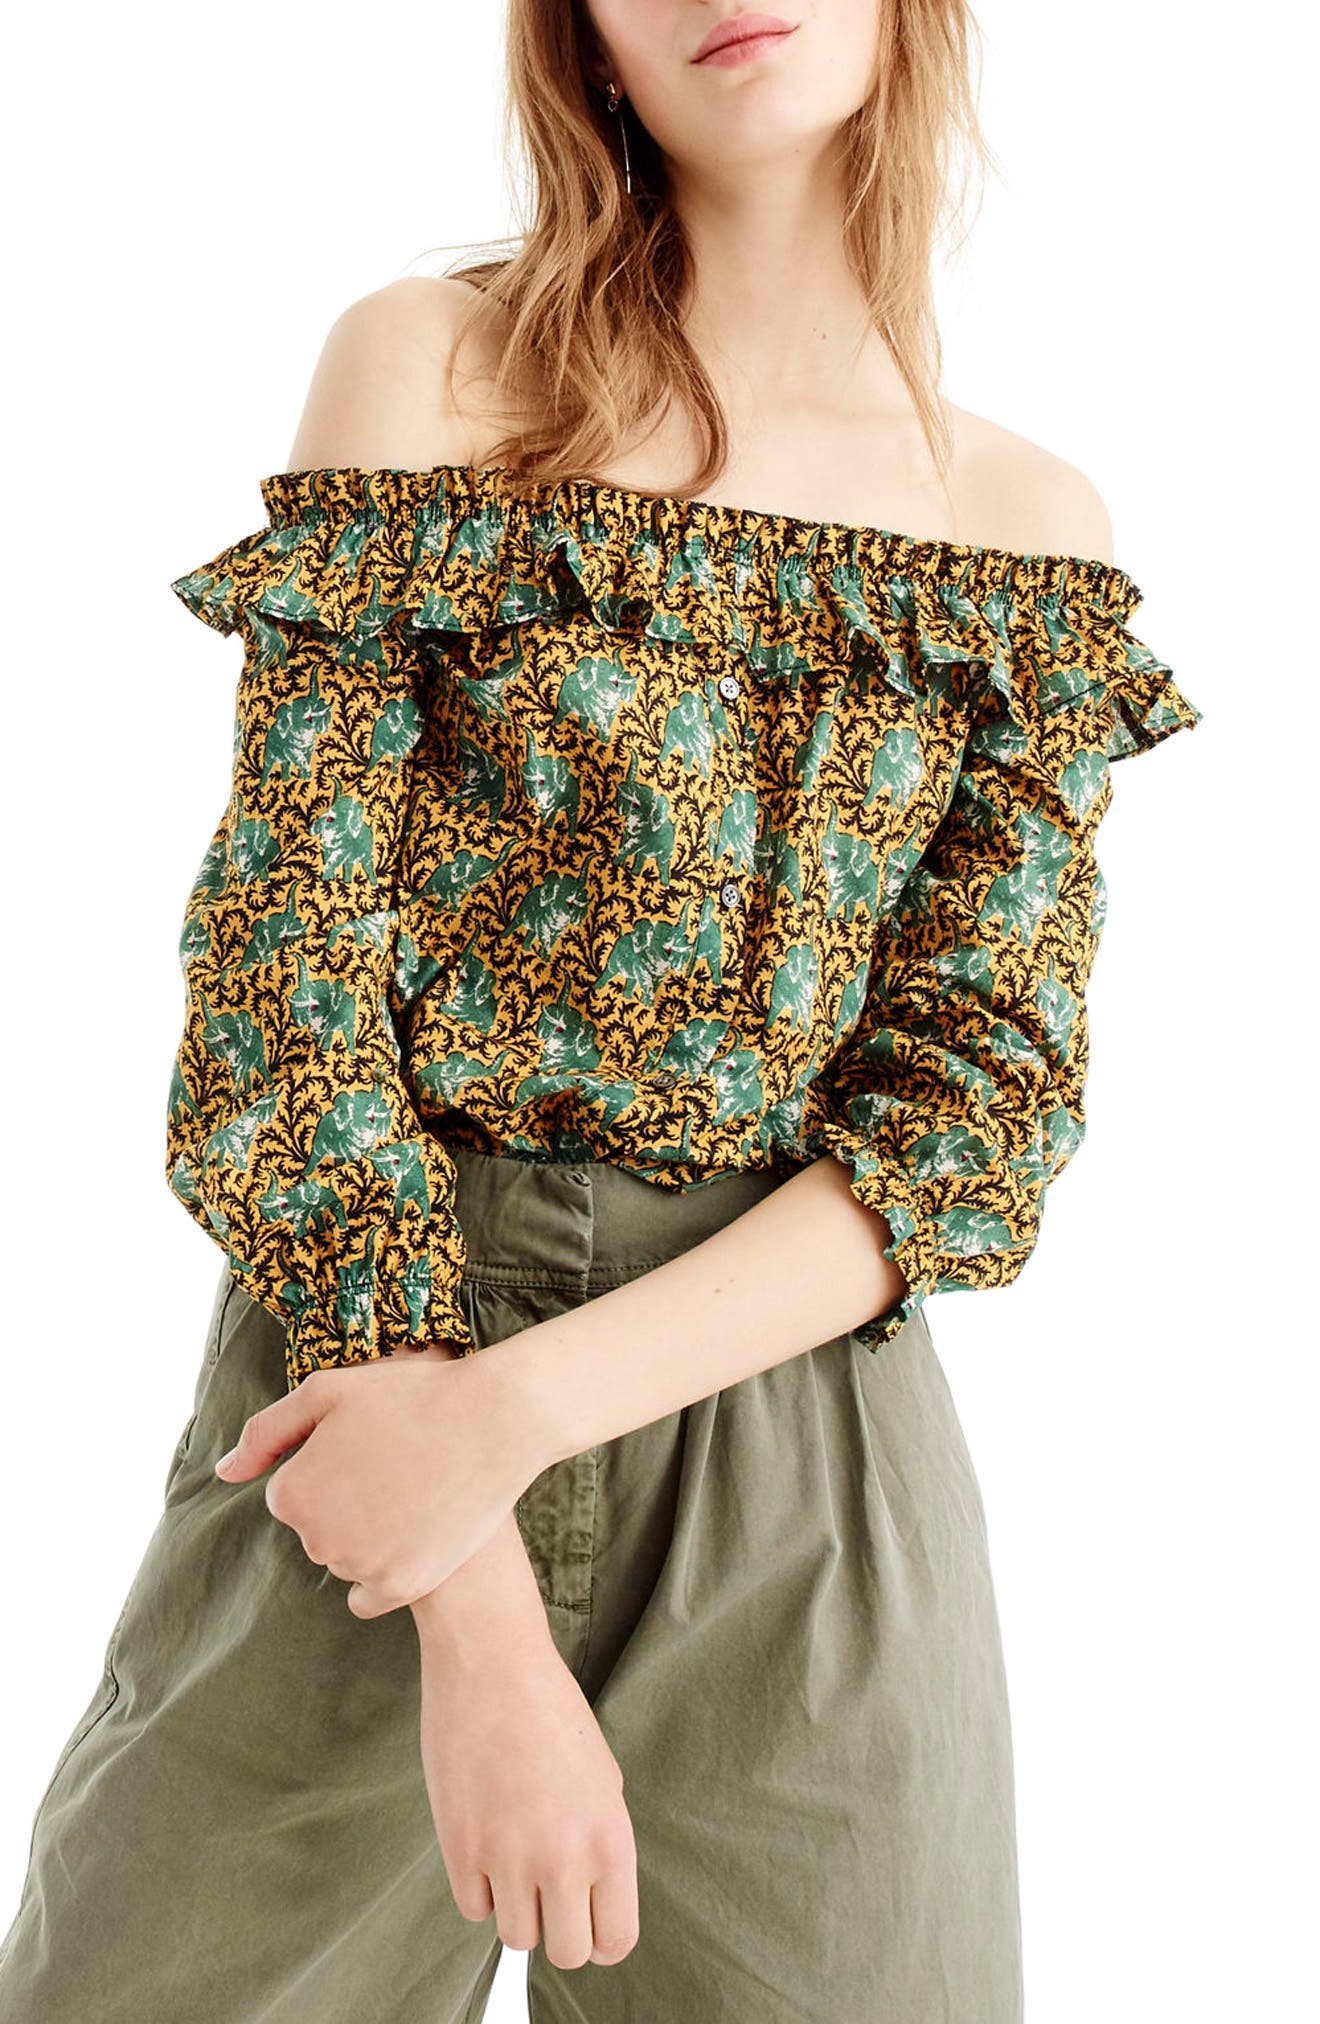 Alternate Image 1 Selected - J.Crew Elephant Print Off the Shoulder Top